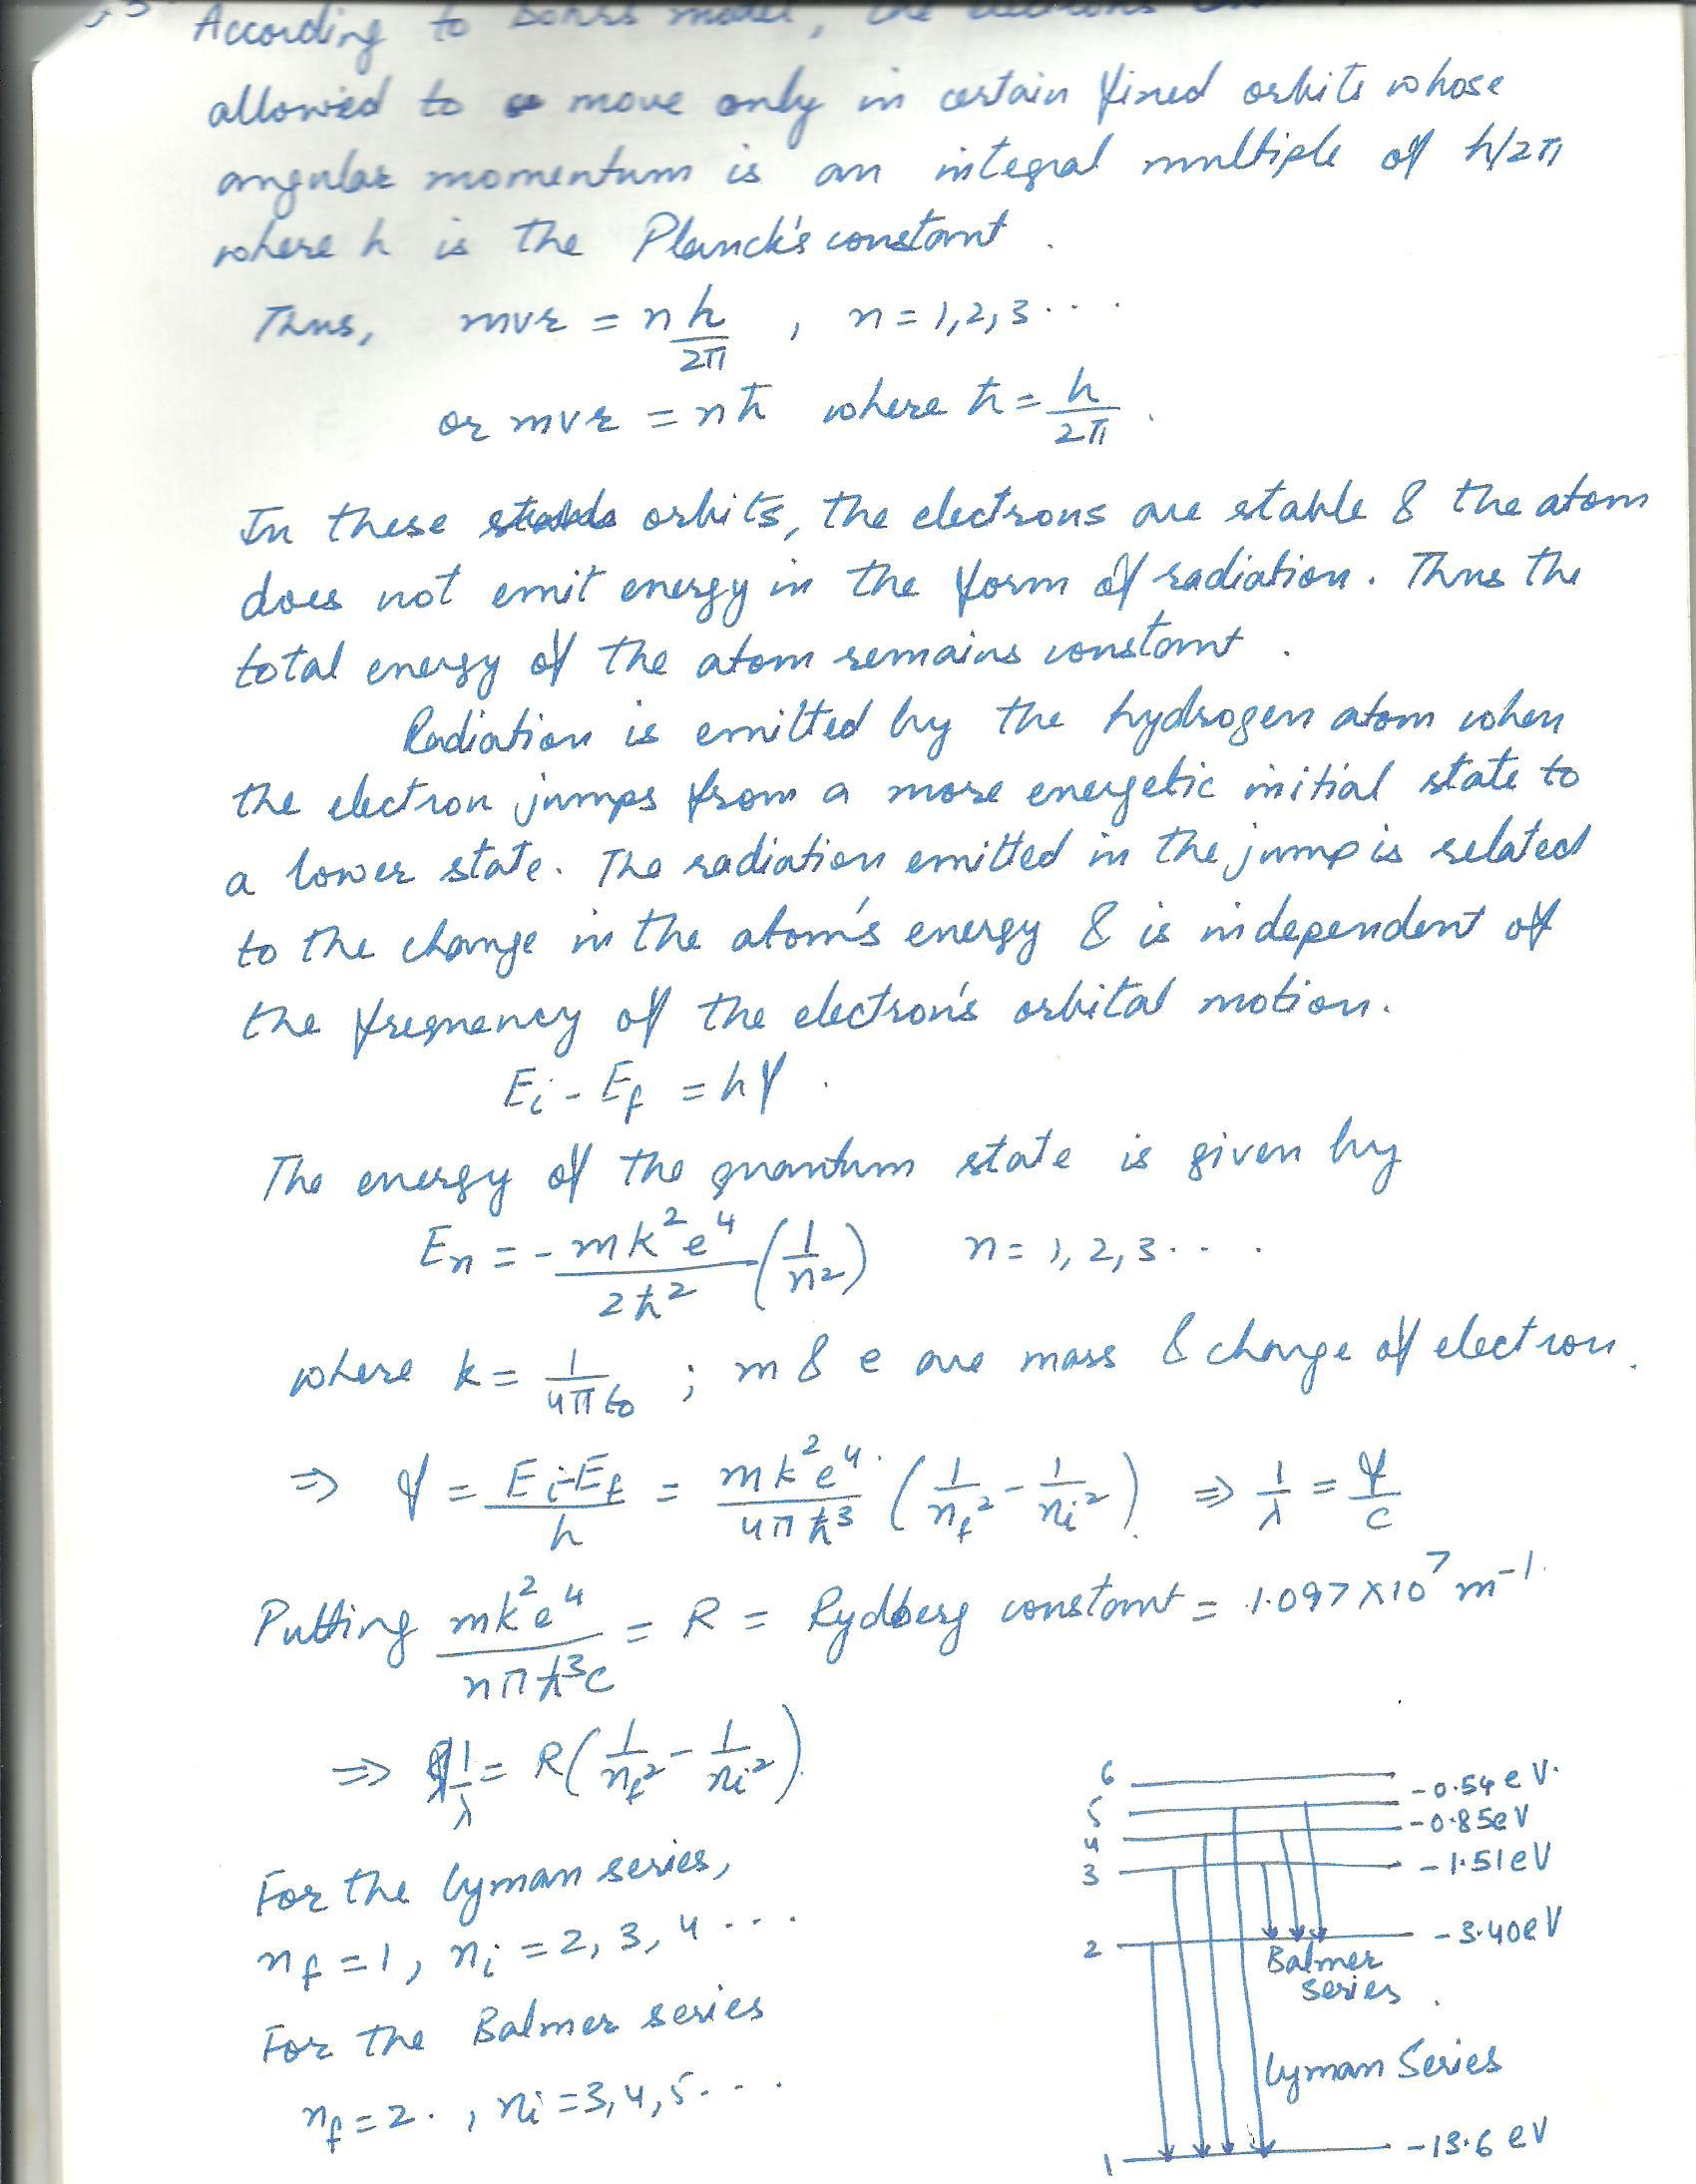 Buzztutor questions and answers by category describe how the bohr concept of the atom was able to explain the discrete sprctra for hydrogenclude stationary stares emission exited energy states altavistaventures Choice Image